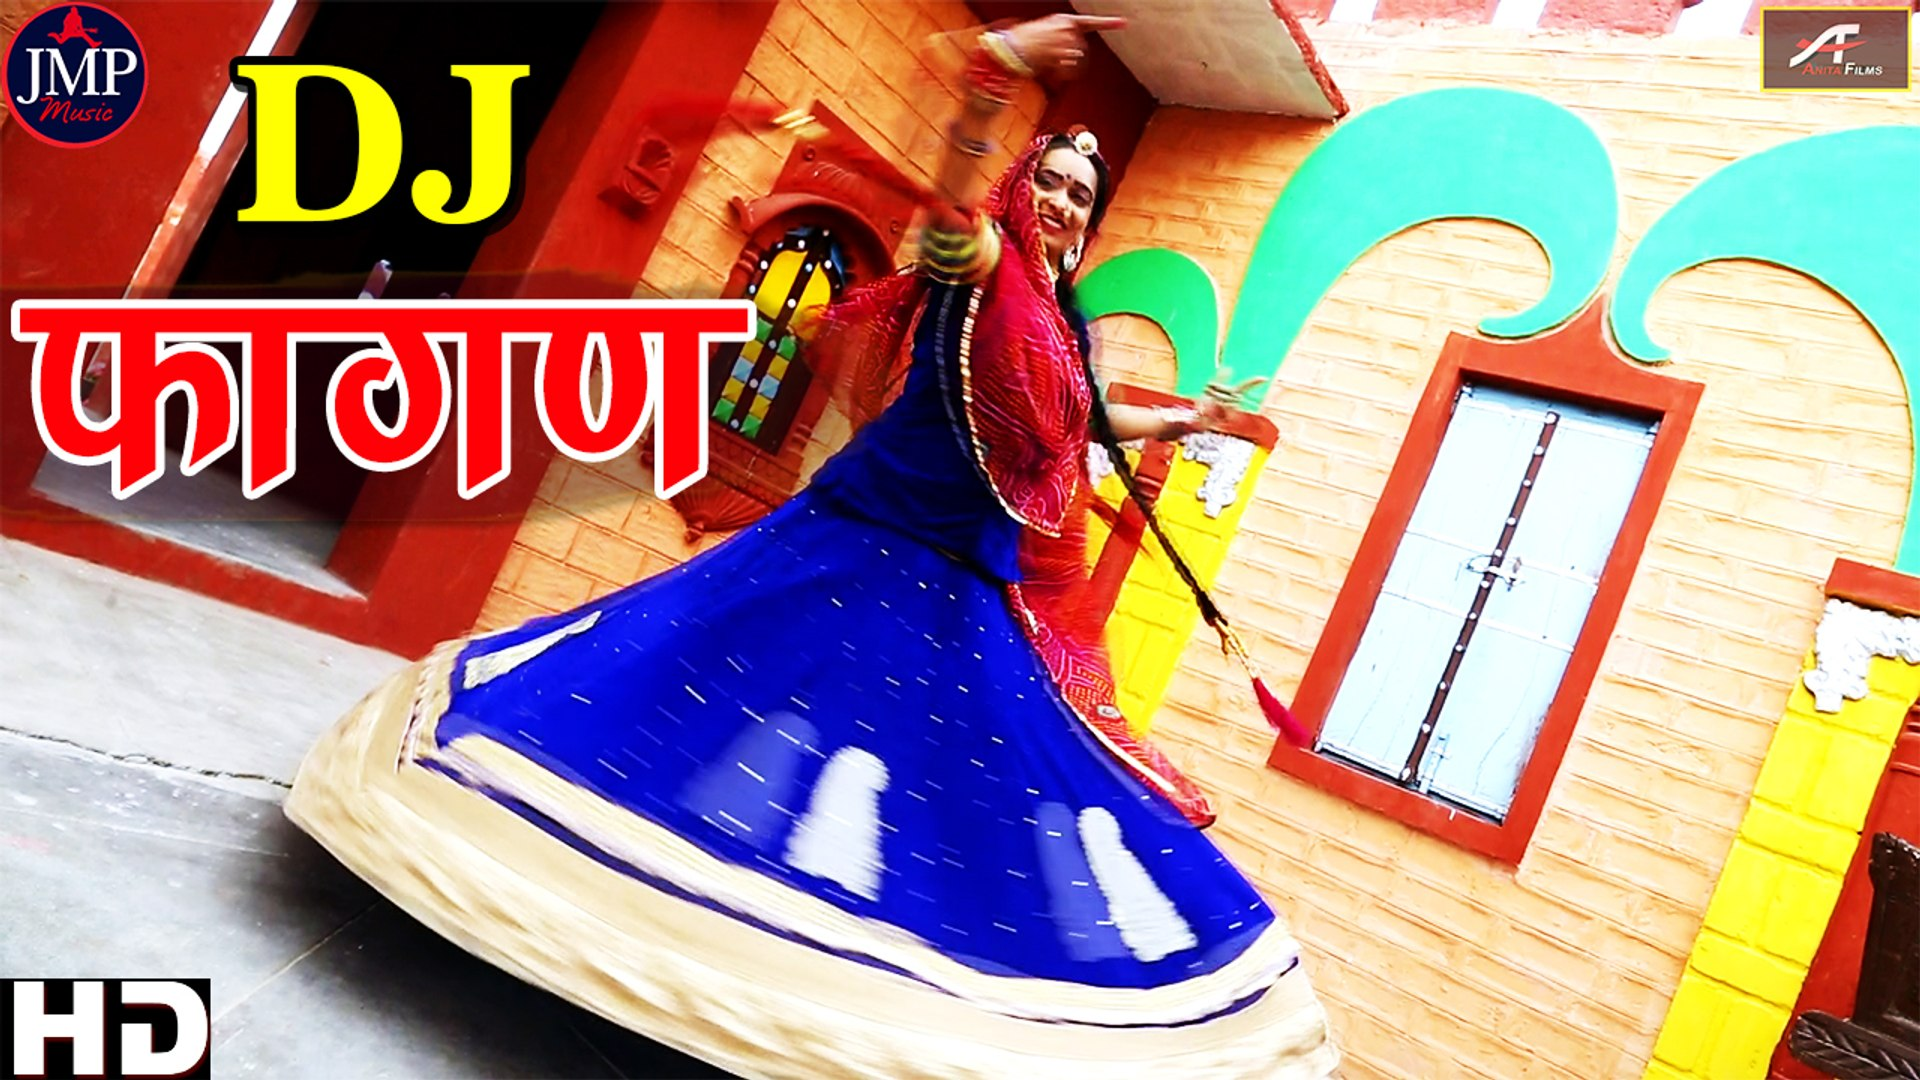 Rajasthani Holi Dj Song 2019 - म्हारी बयान - Marwadi Fagan Dj Song - New Superhit Dance Video - Late